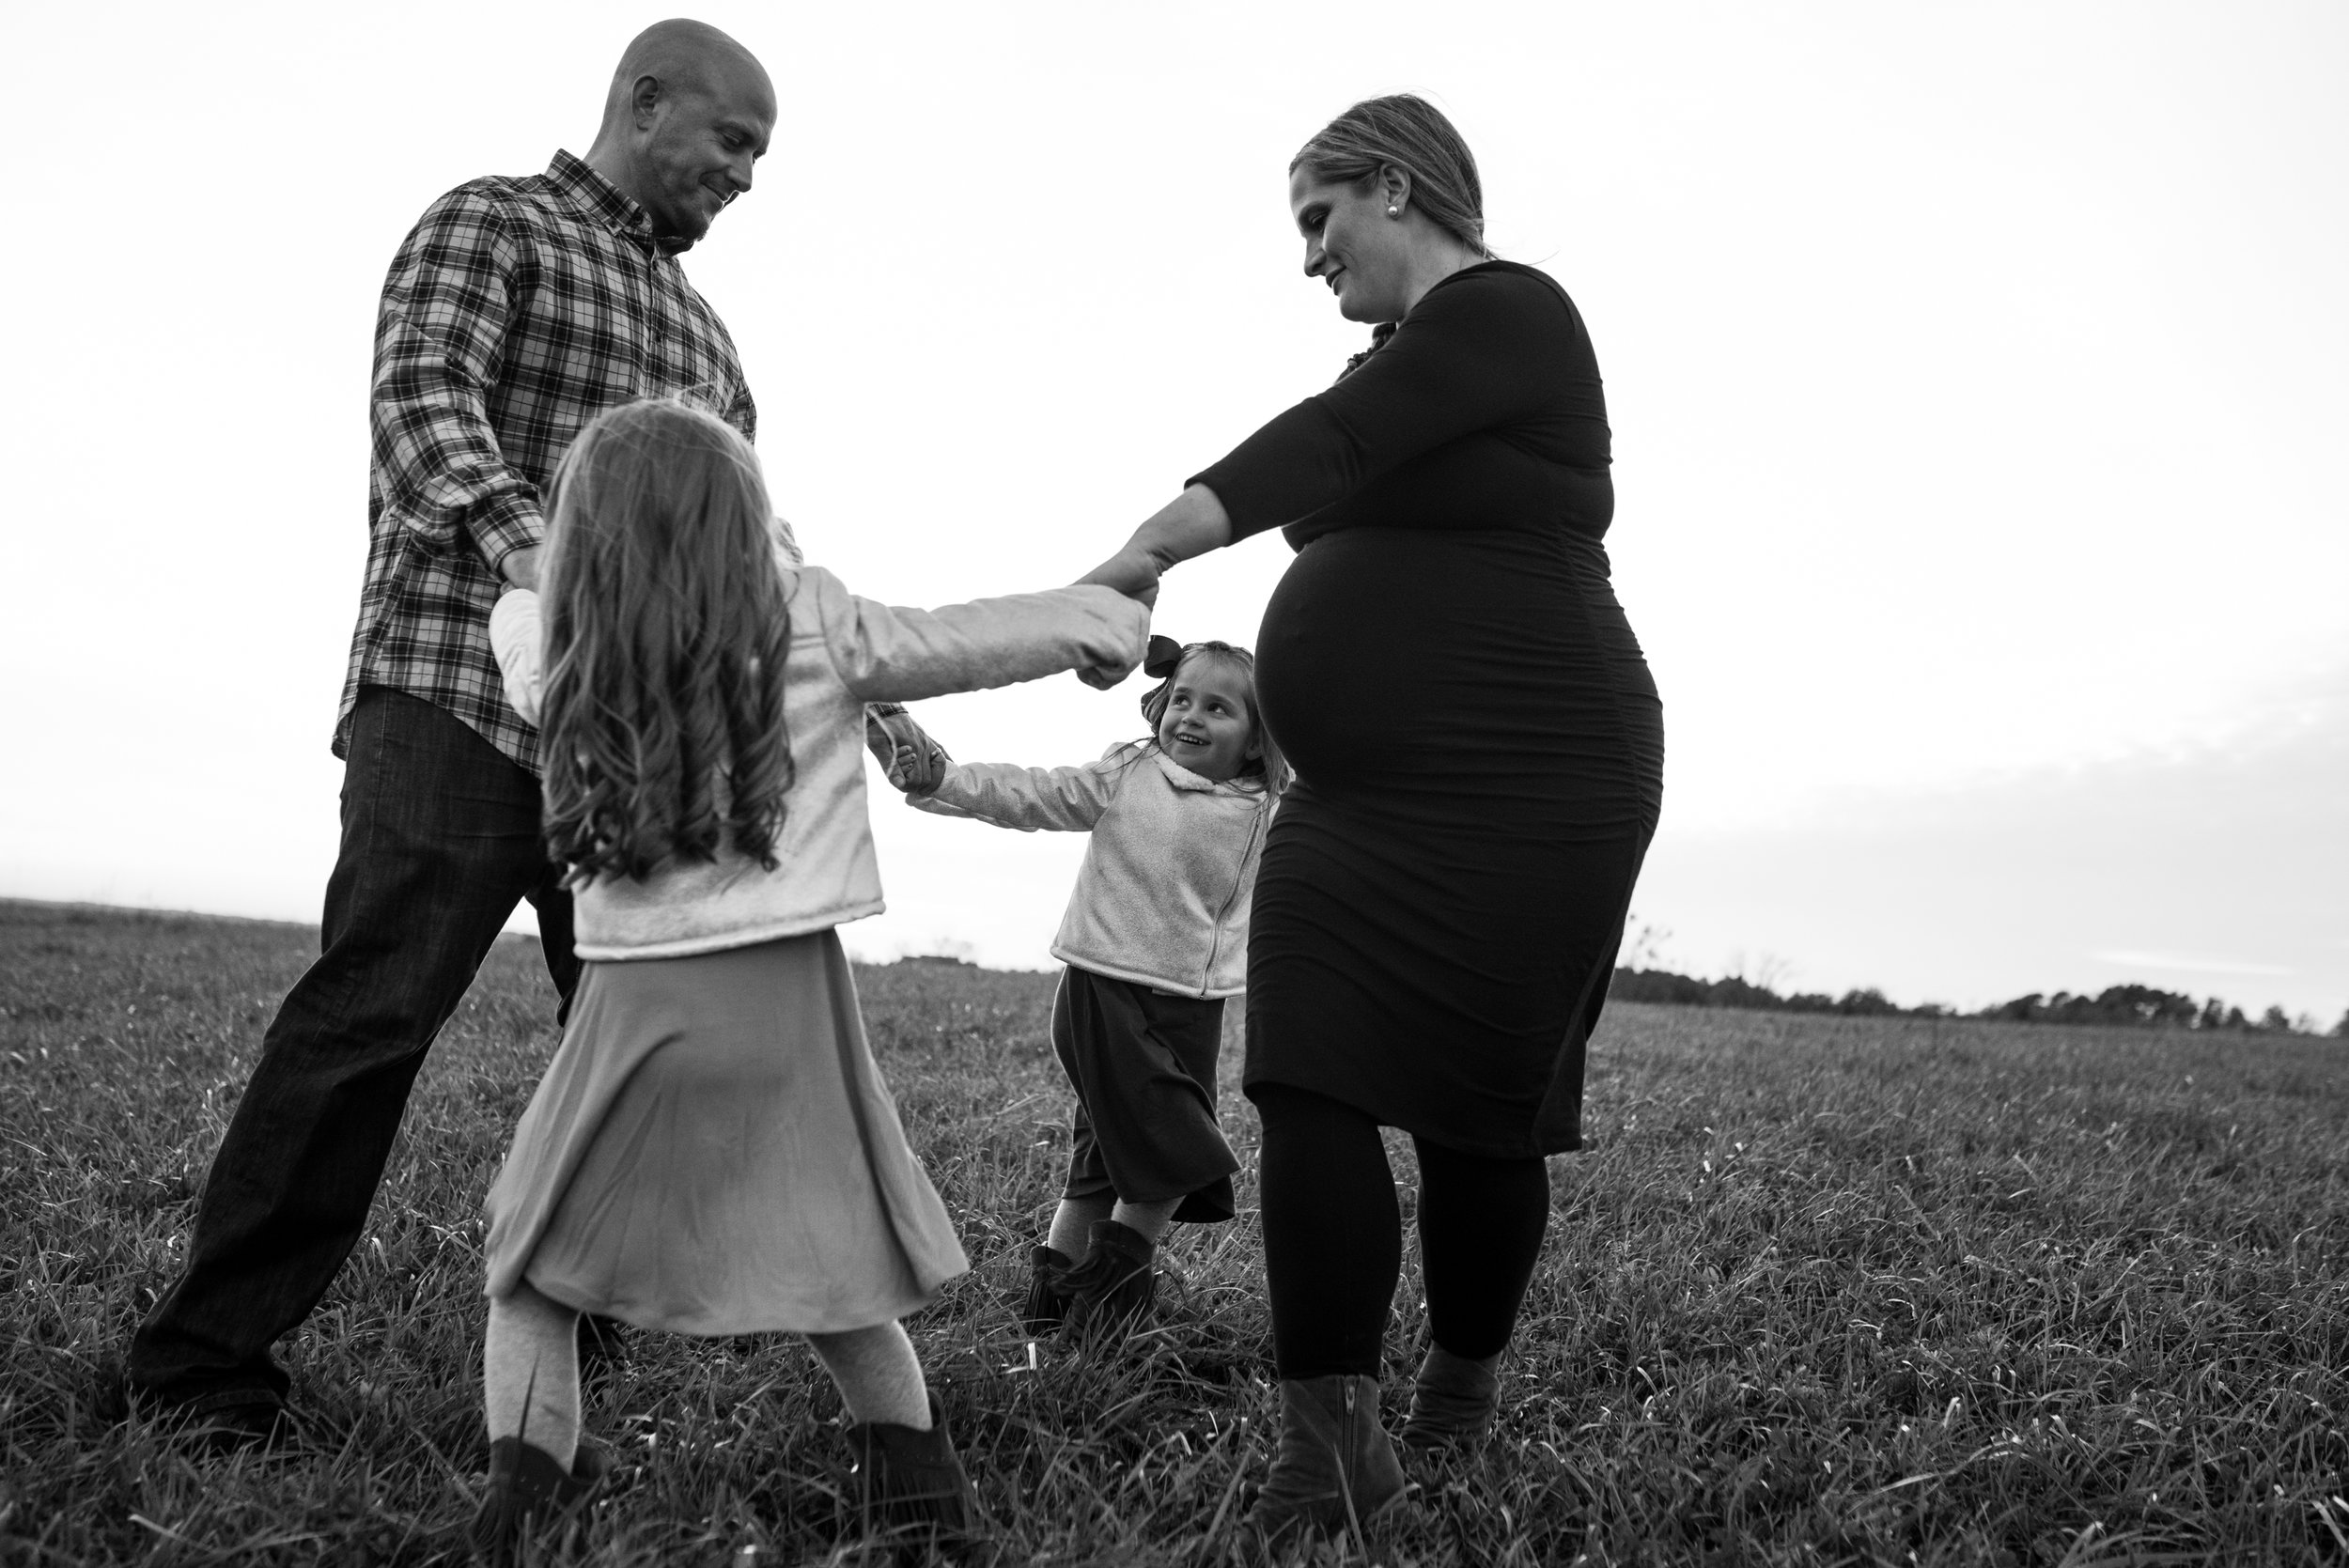 Family of four playing ring around the rosy, daughter smiling at dad, pregnant mom